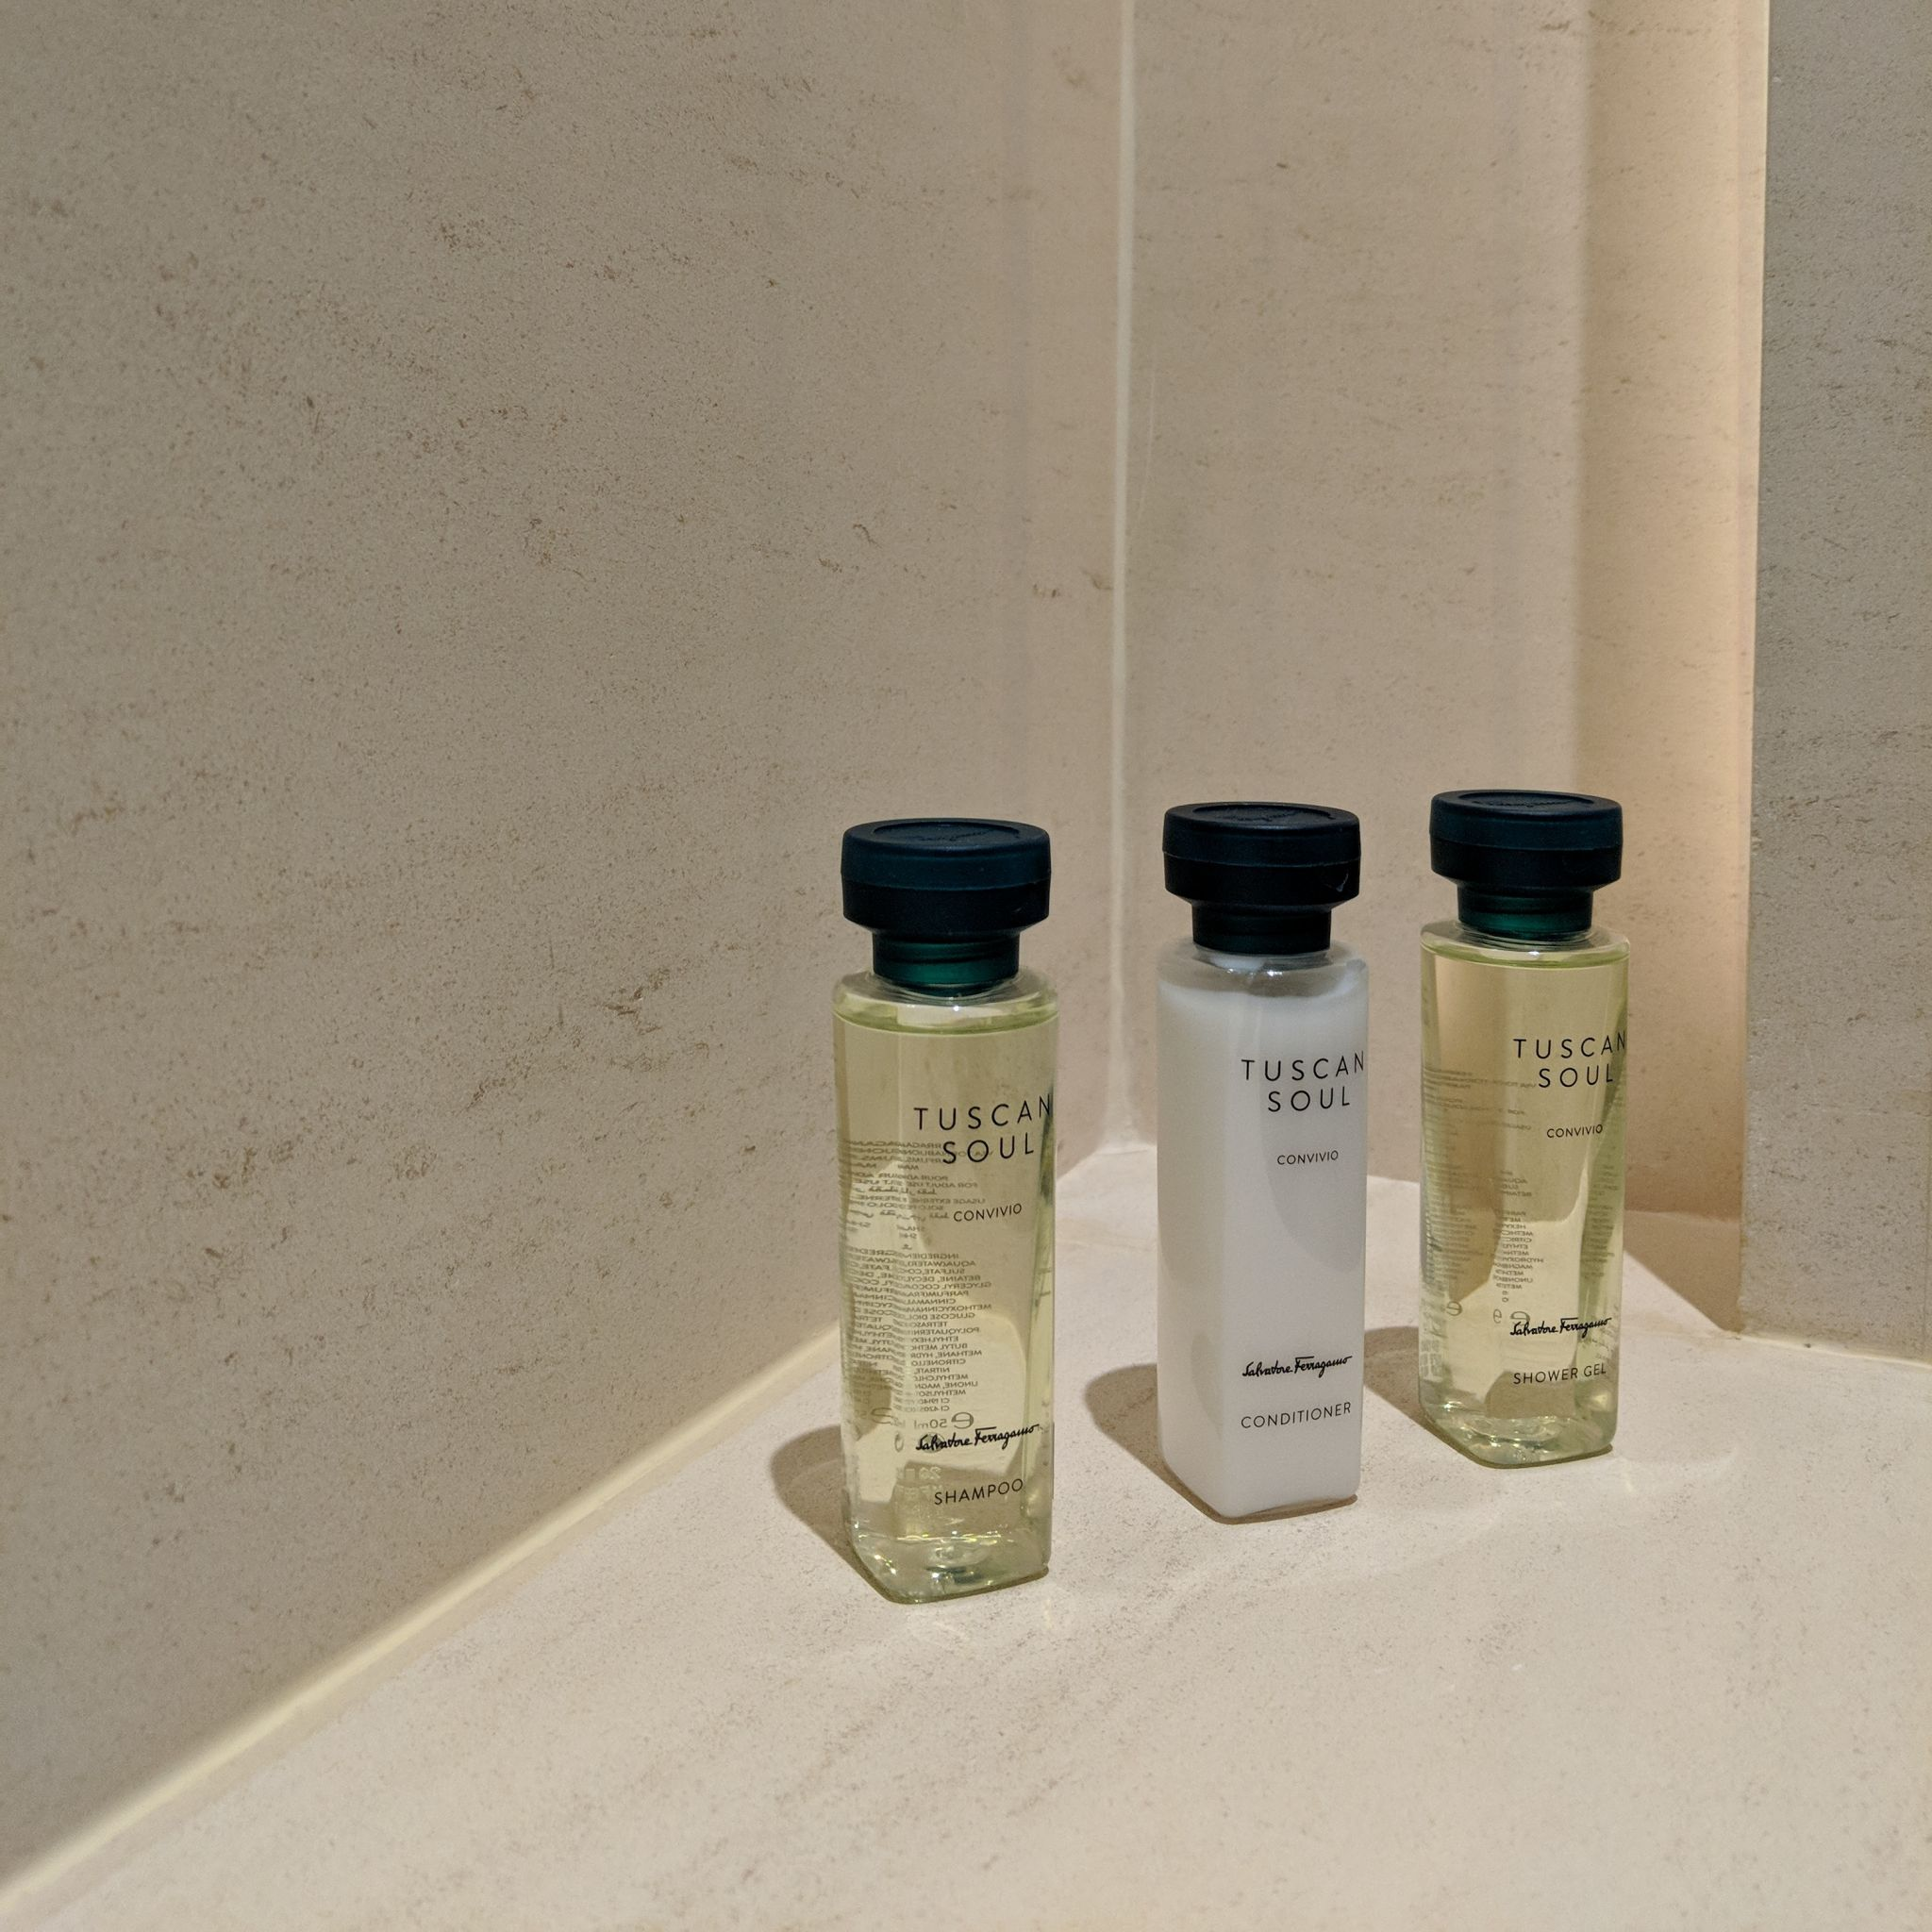 The Capitol Kempinski Hotel Singapore stamford suite bathroom amenities